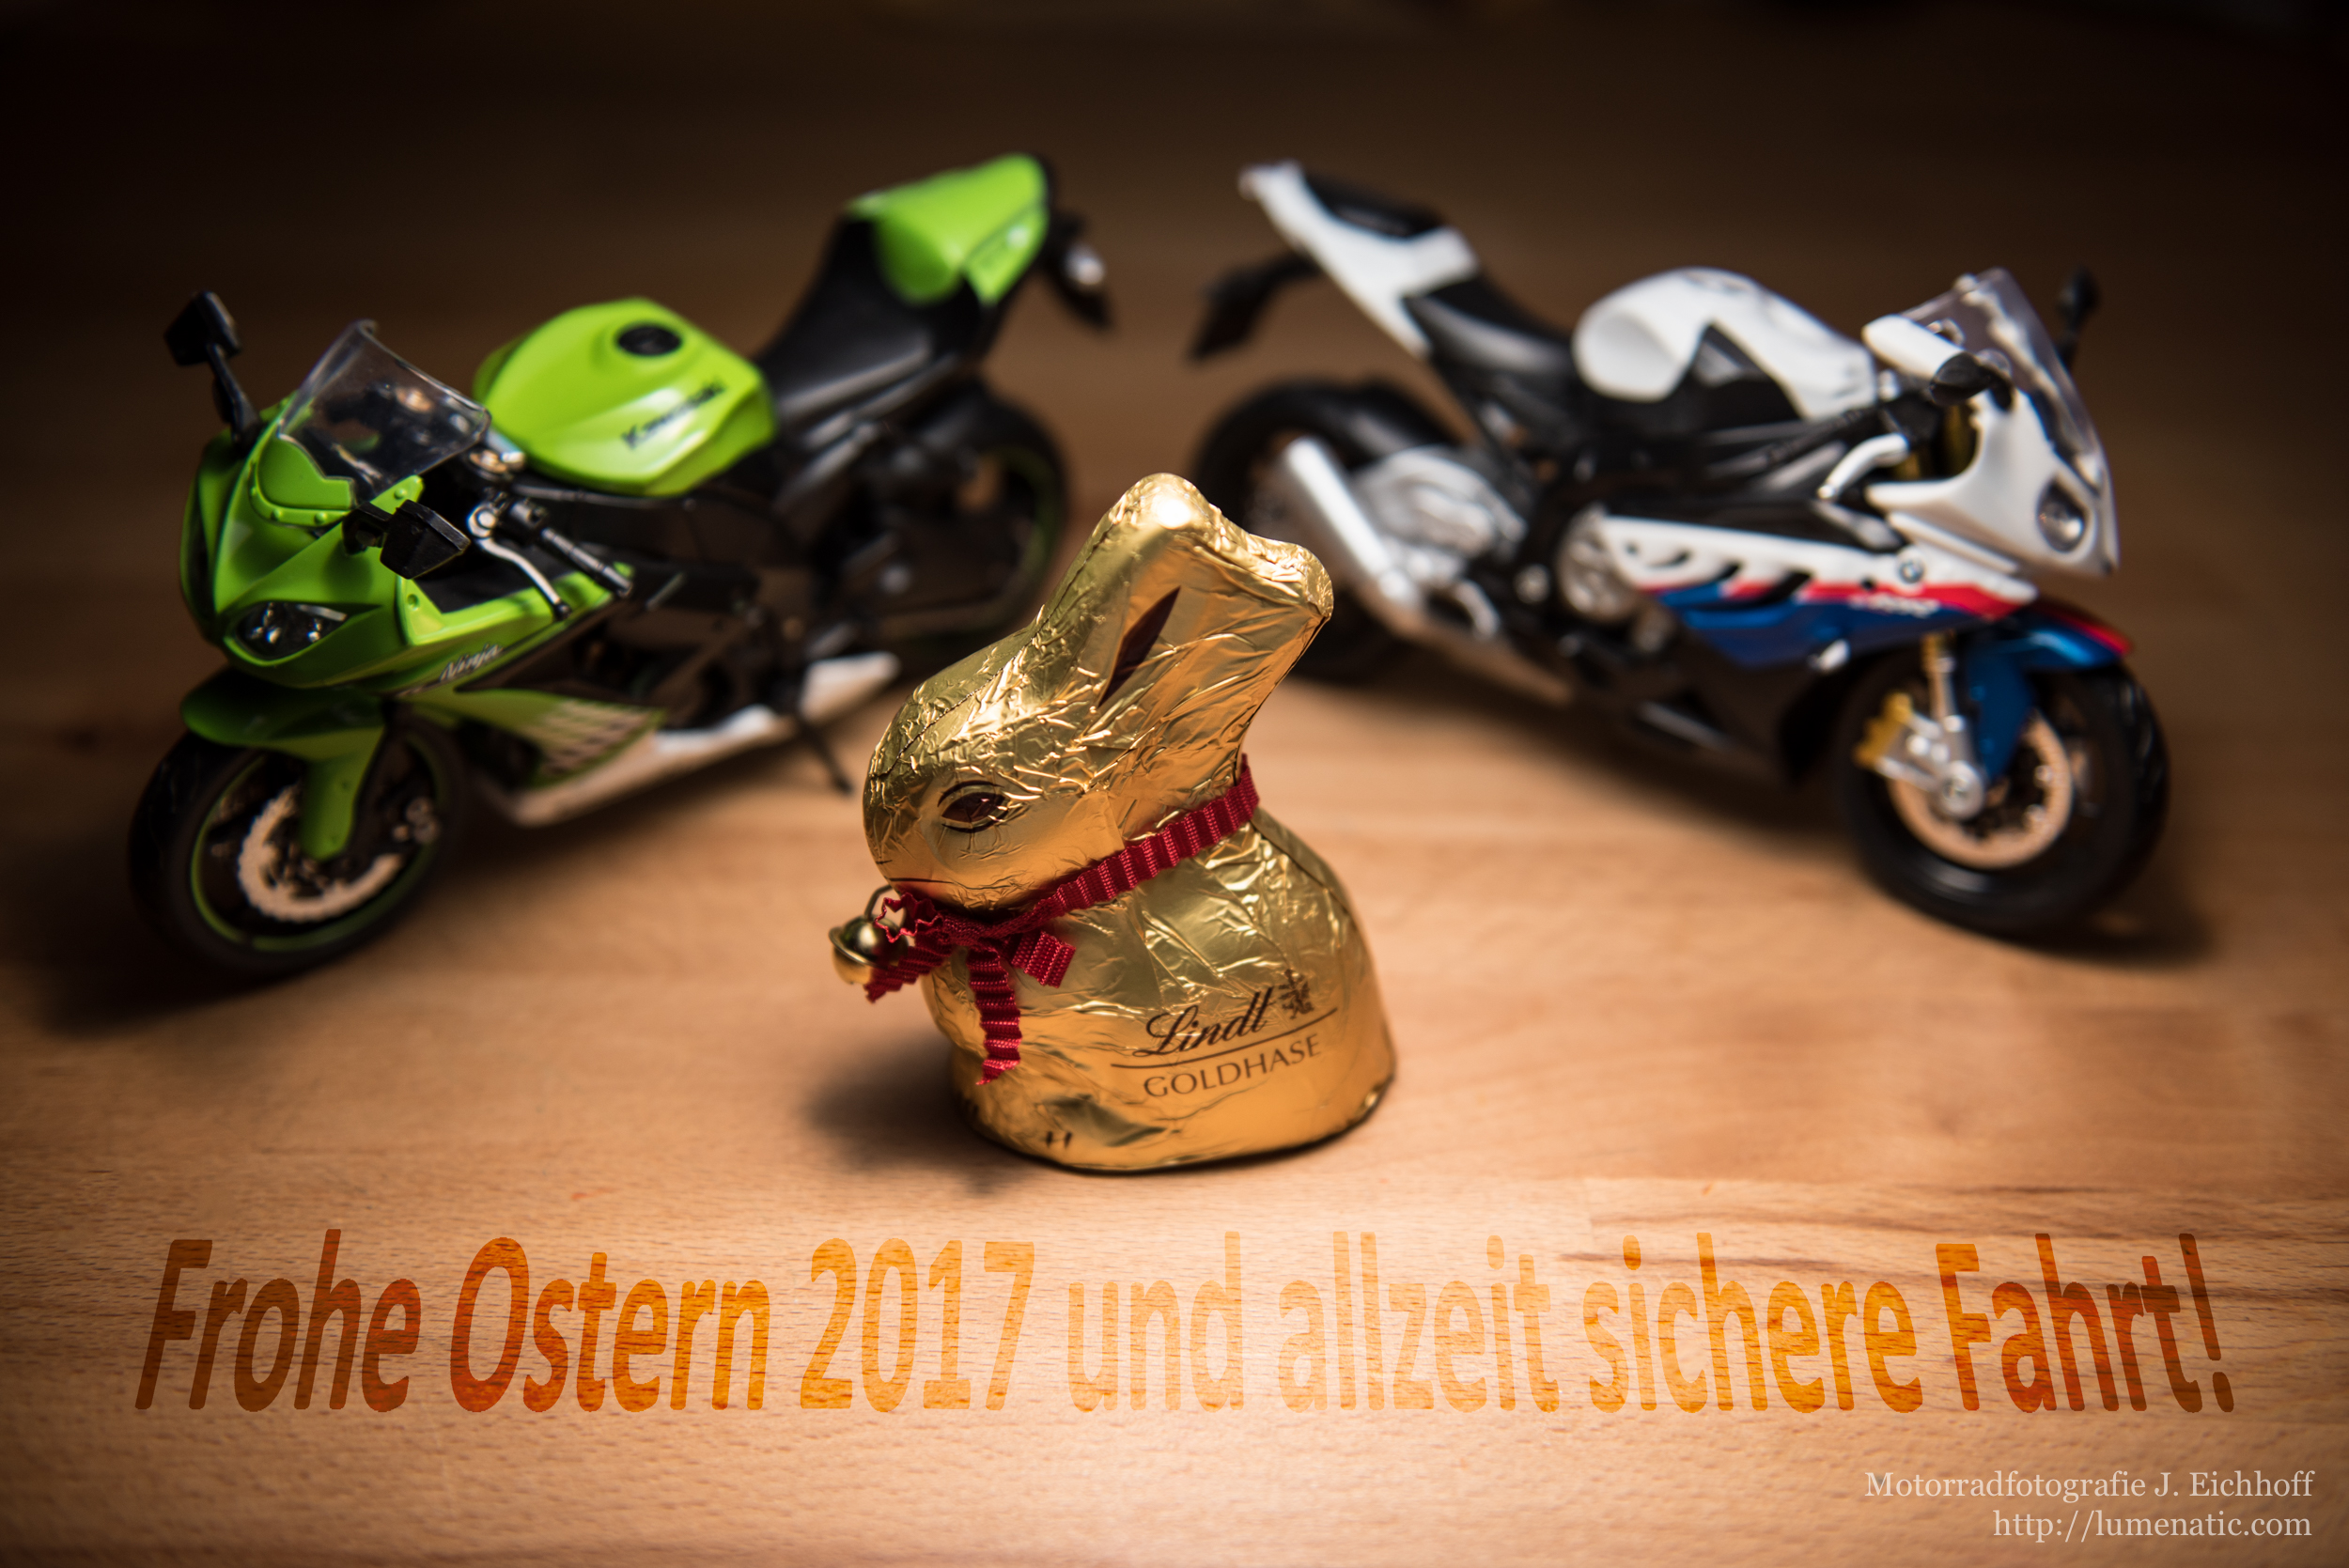 Frohes Ostern 2017